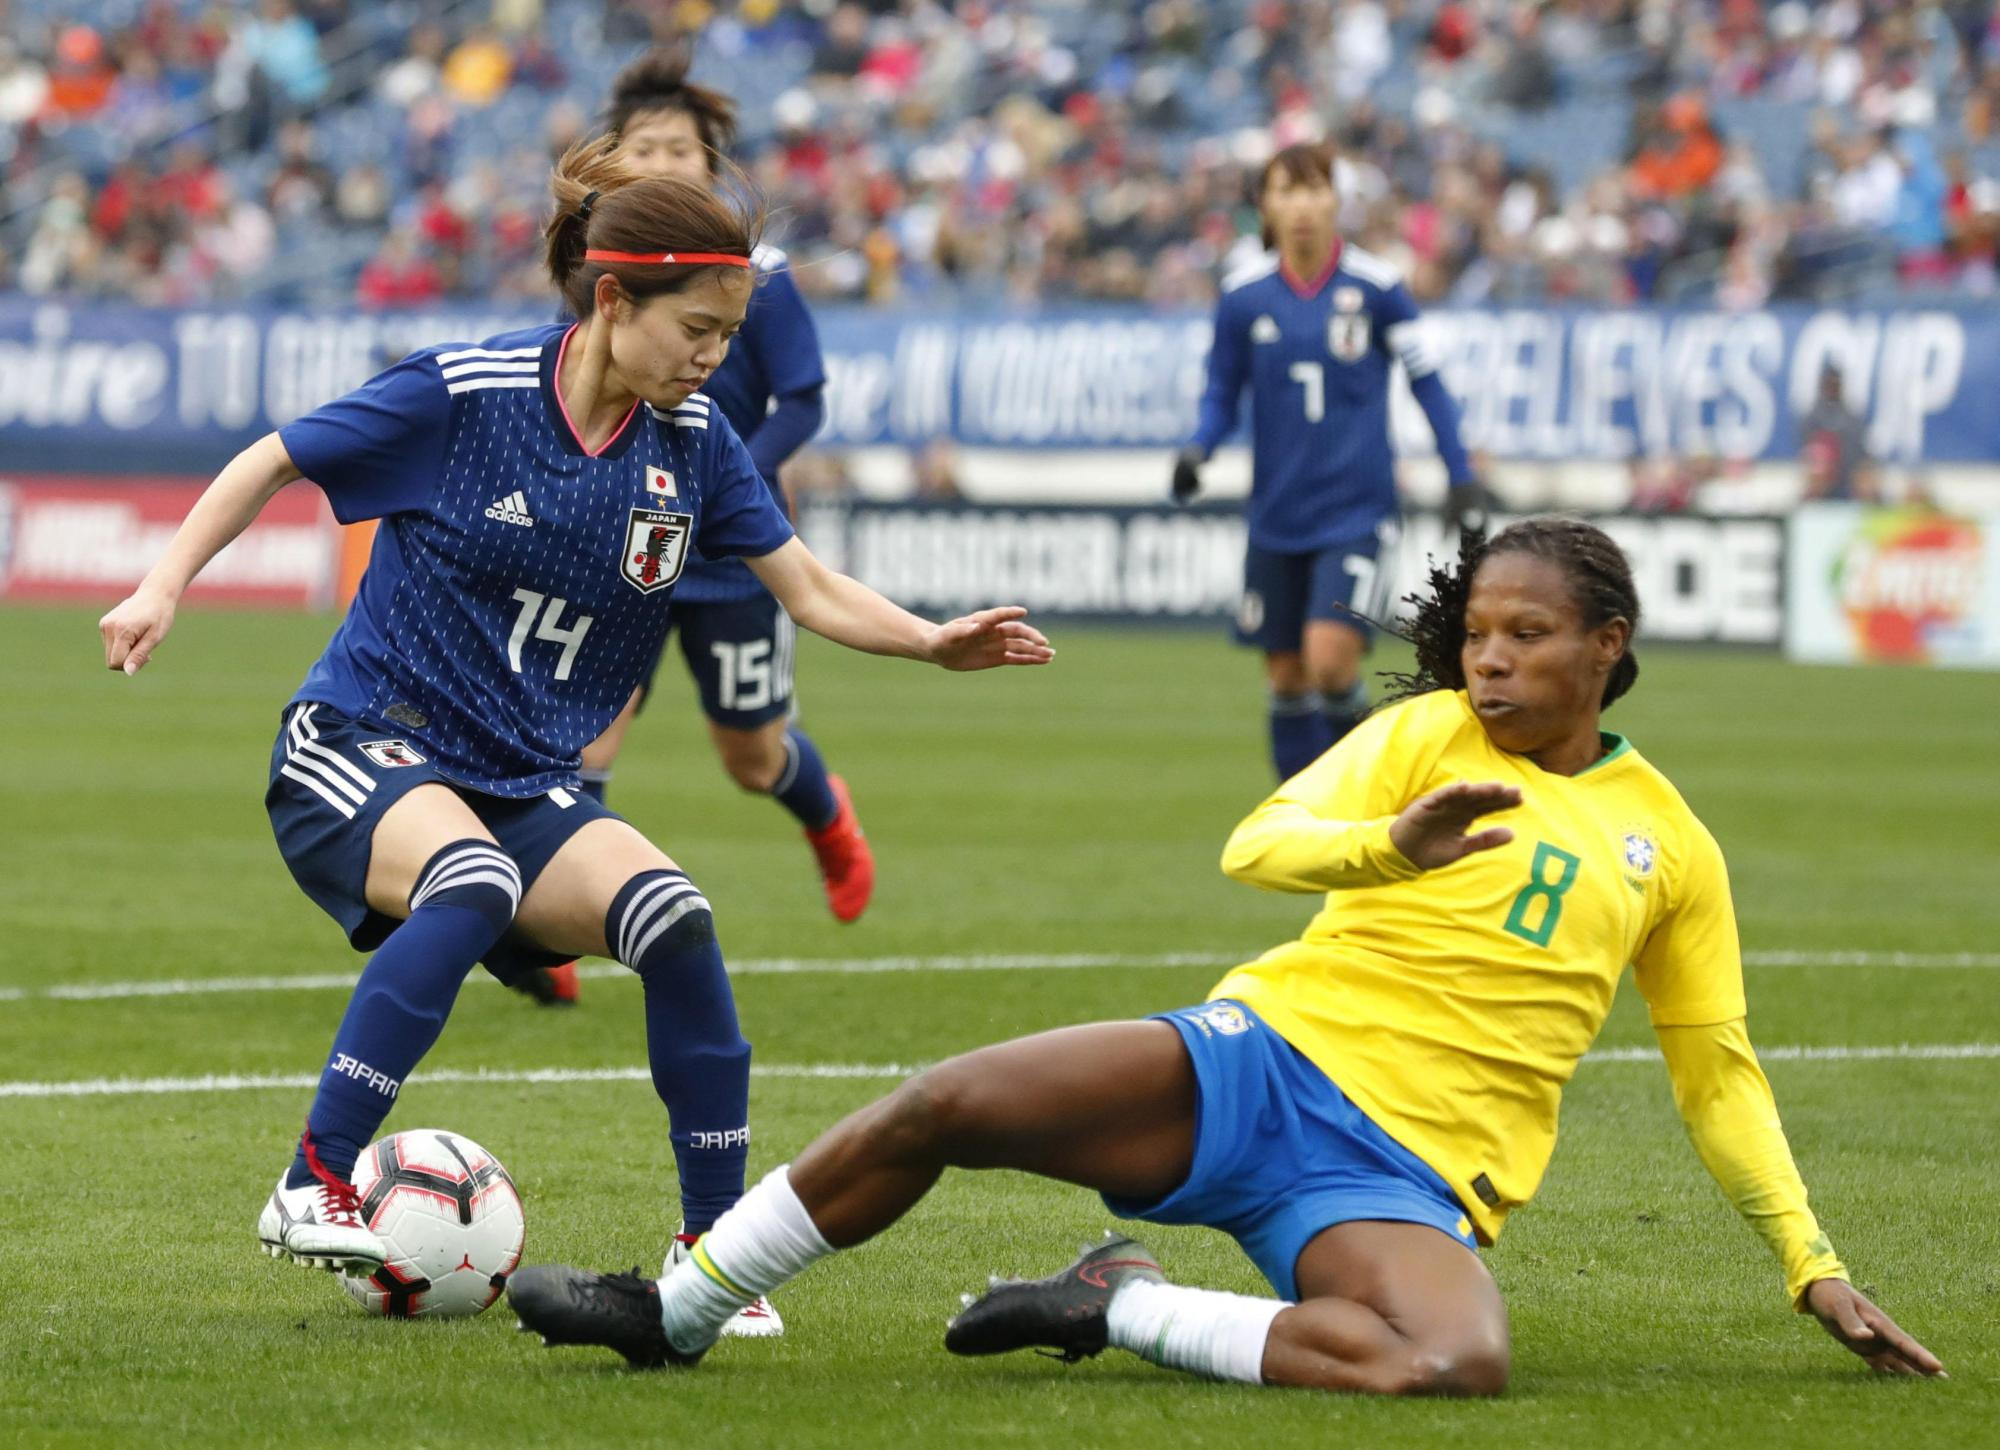 Nadeshiko Japan's Yui Hasegawa controls the ball as Brazil's Miraildes defends during their match at the SheBelieves Cup on Saturday in Nashville, Tennessee. Japan won 3-1.   KYODO